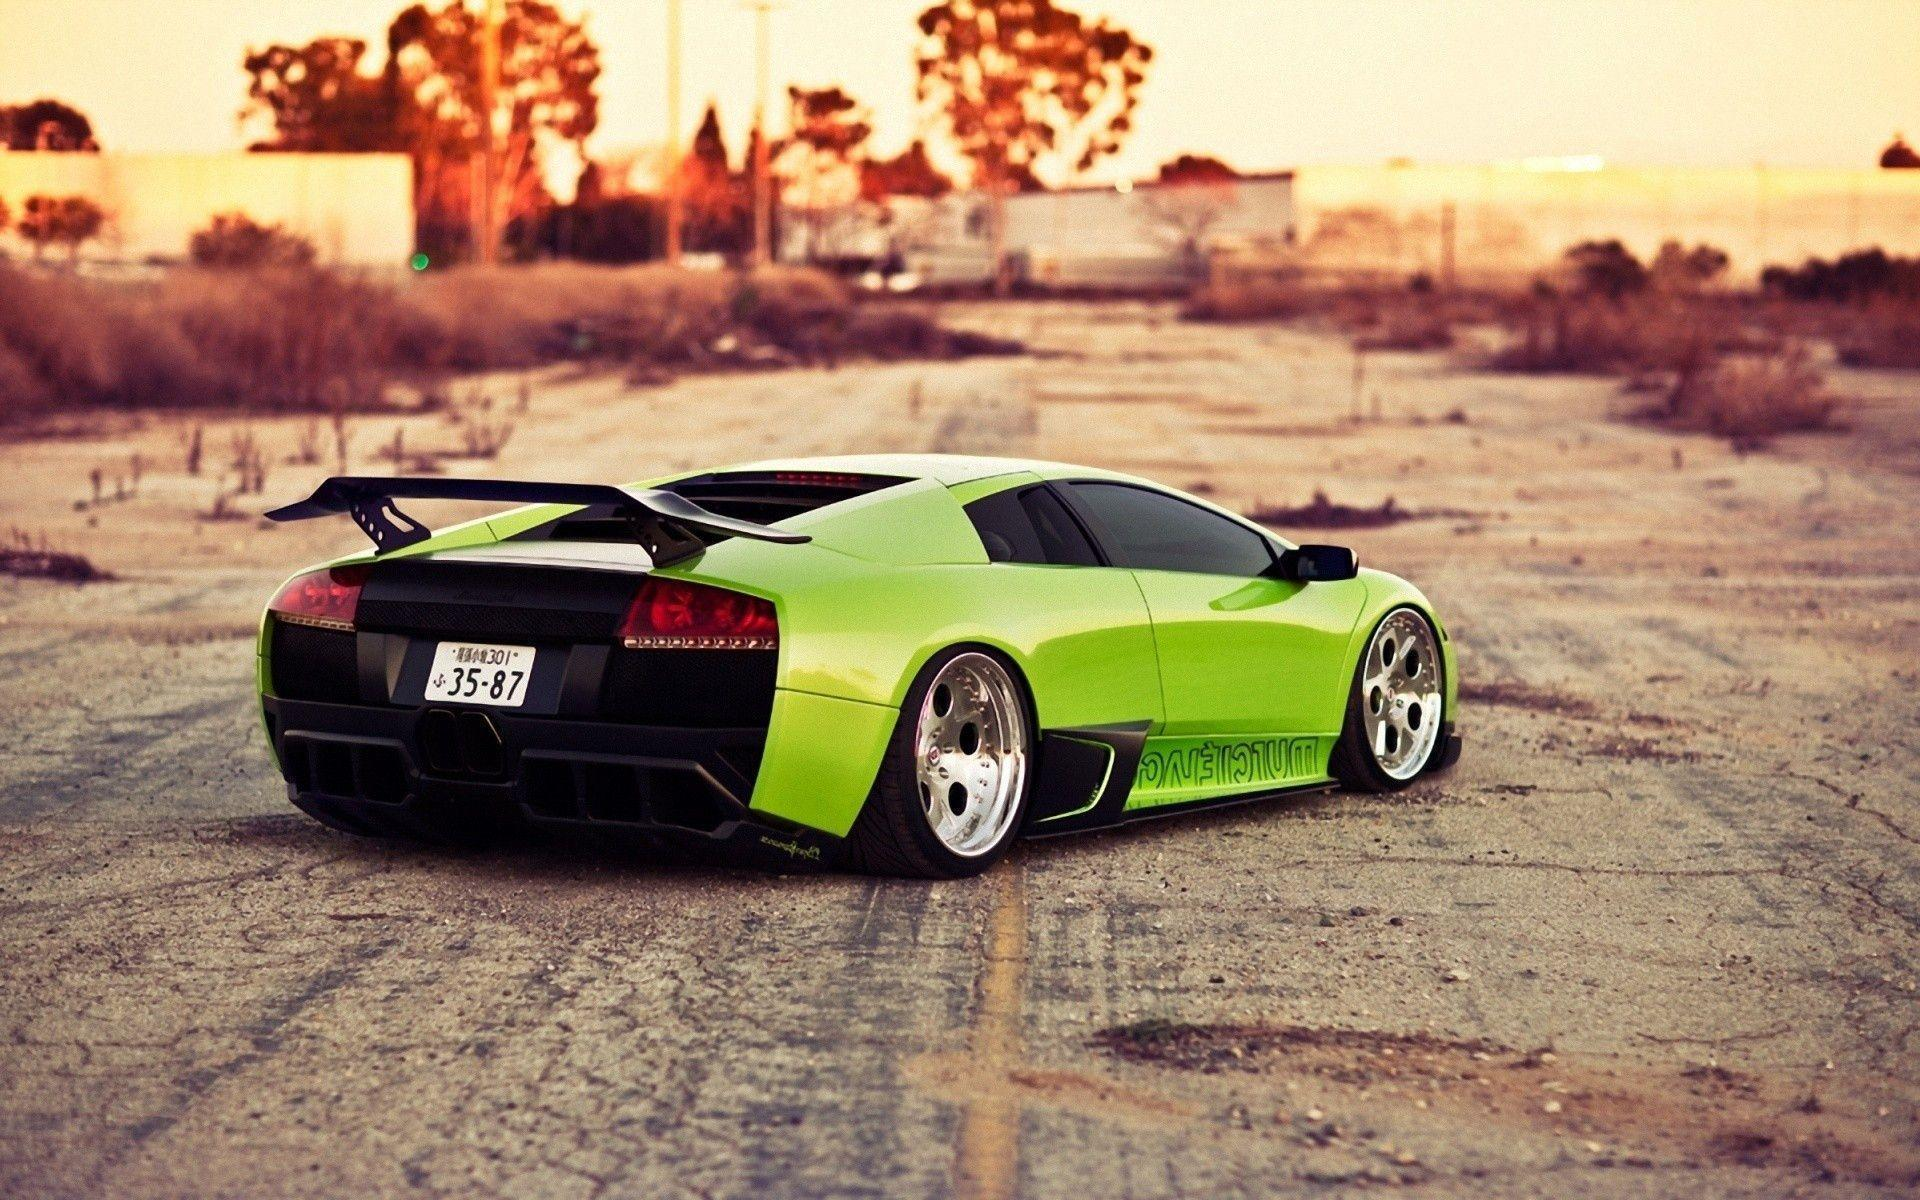 Lamborghini Cars wallpaper - 555234